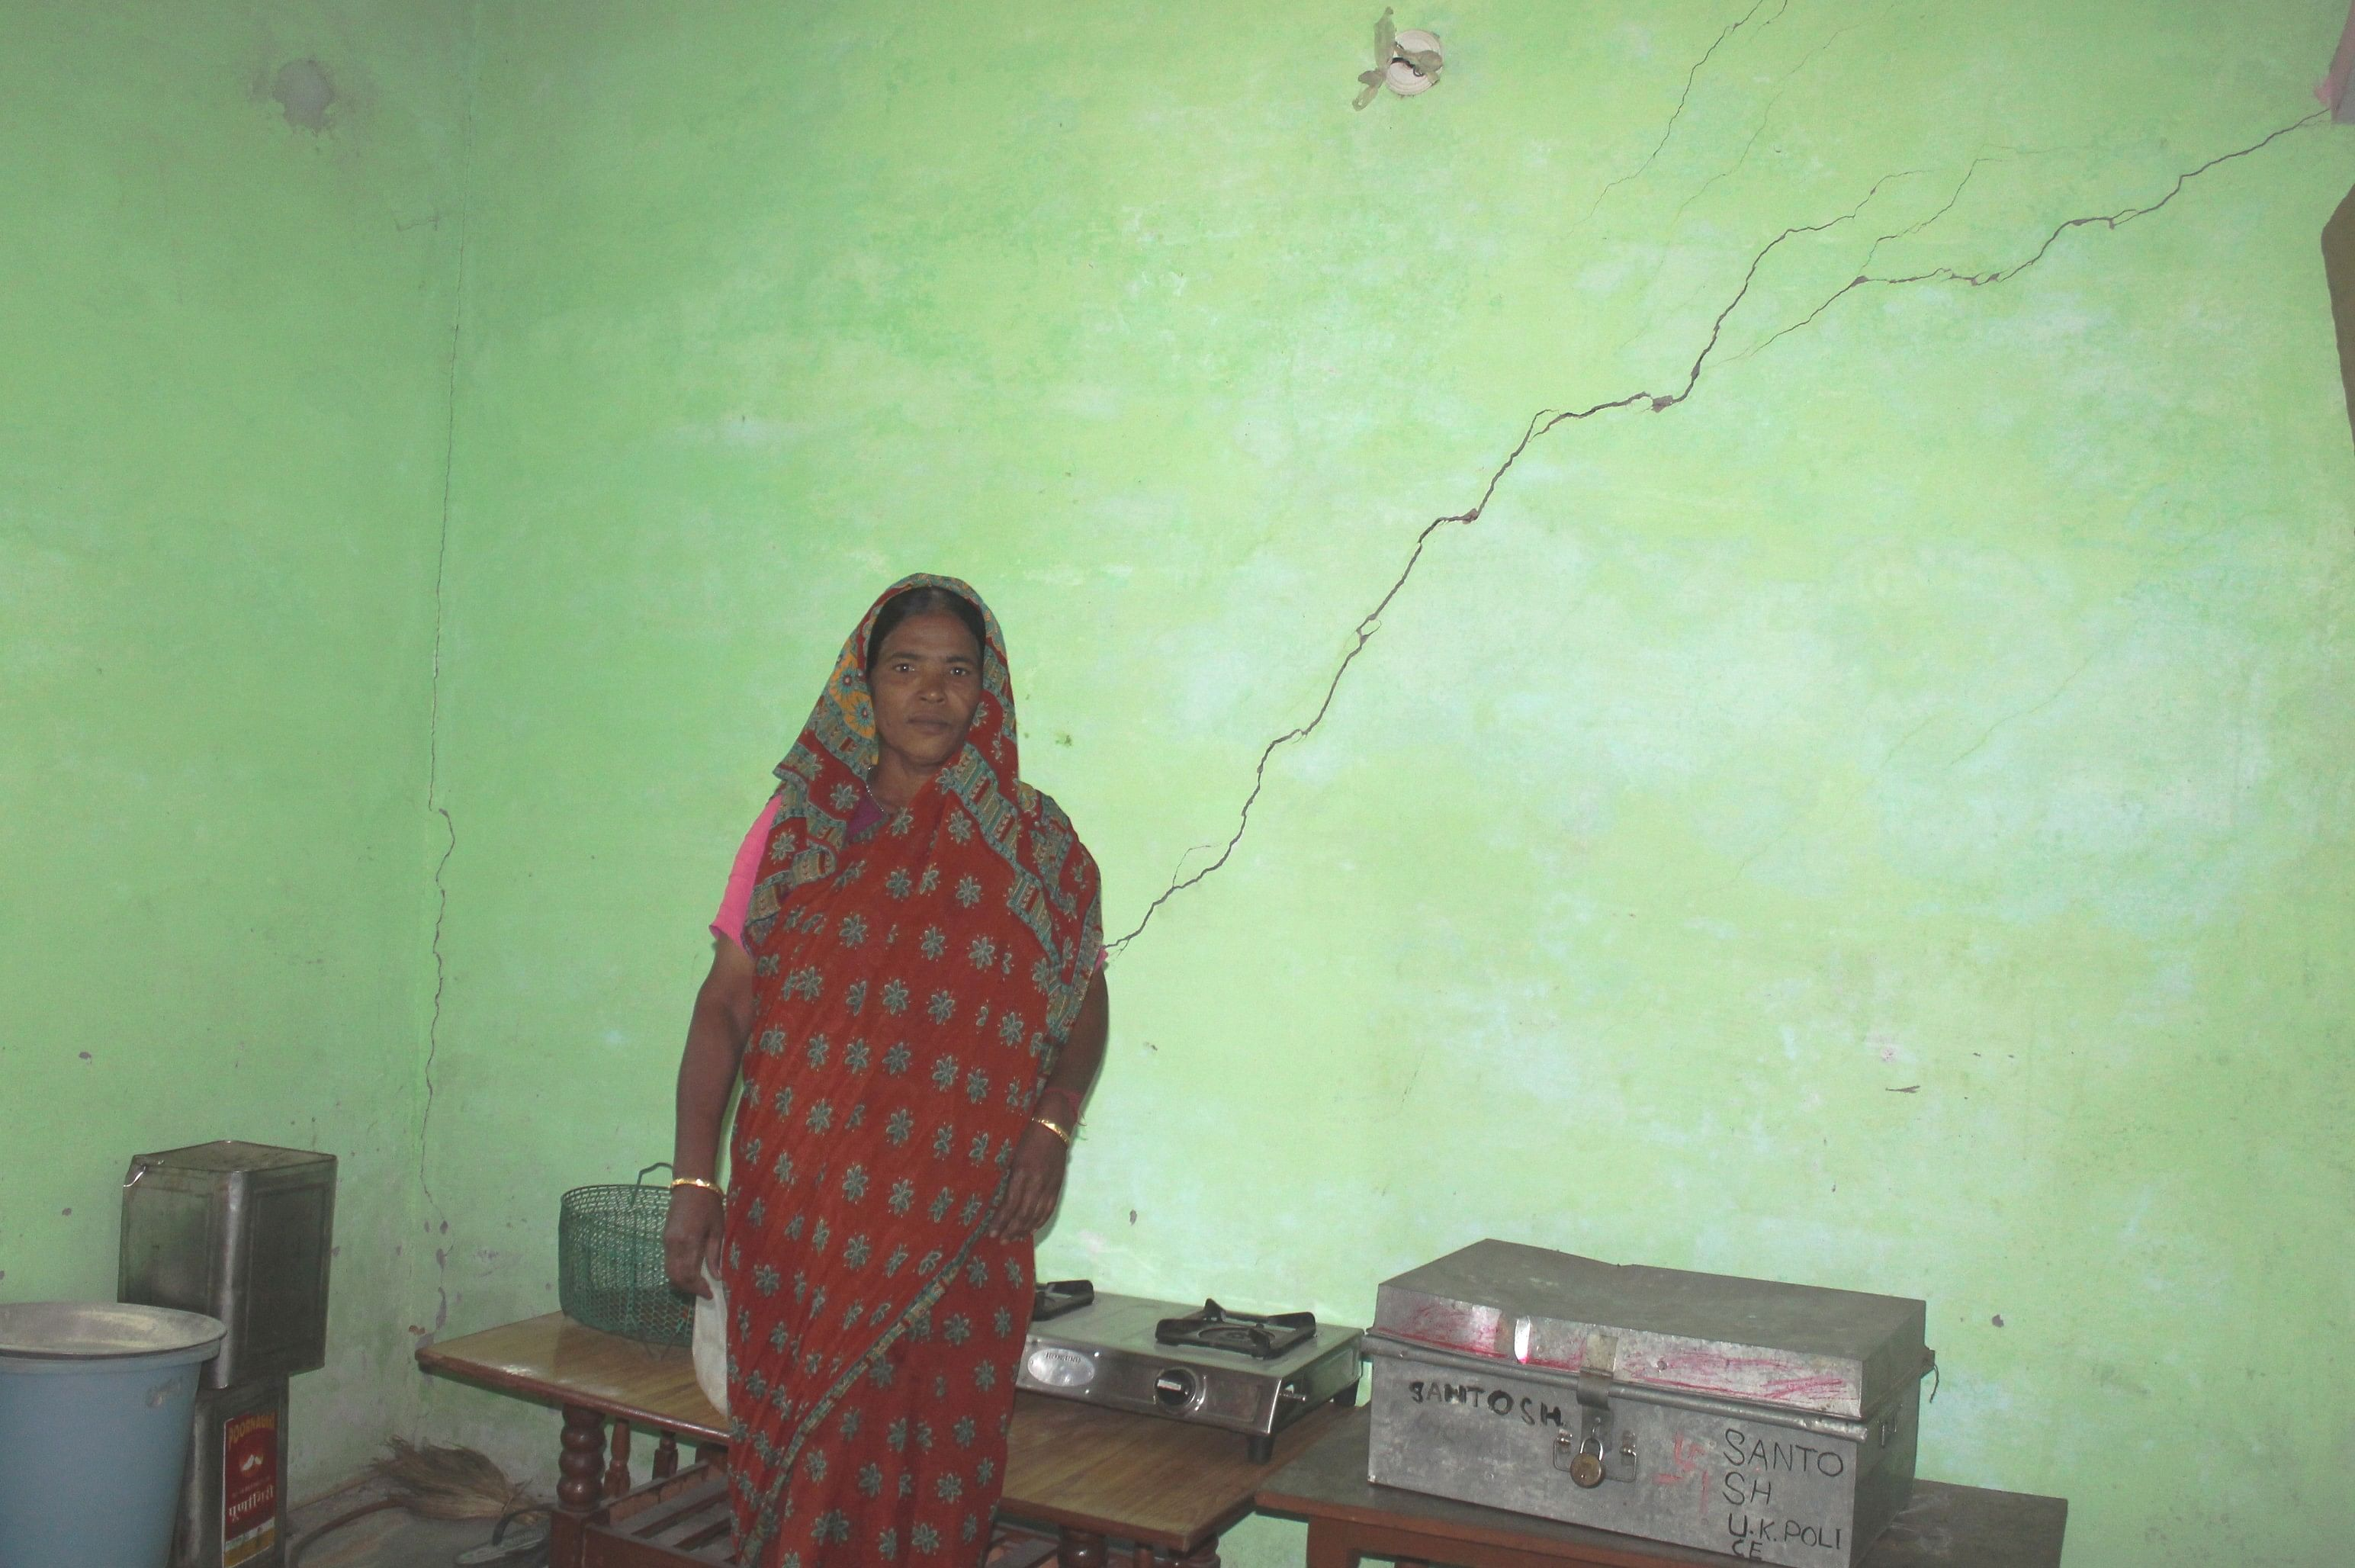 Ever since the devastating cloudburst in Uttarakhand, hill women like Gundi Devi are living under a lot of tension and pressure. 'Whatever we are facing – an untimely monsoon, unexpected snowfall, flashfloods … it is all because of our greed for 'development'. (Credit: Chetna Verma\WFS)